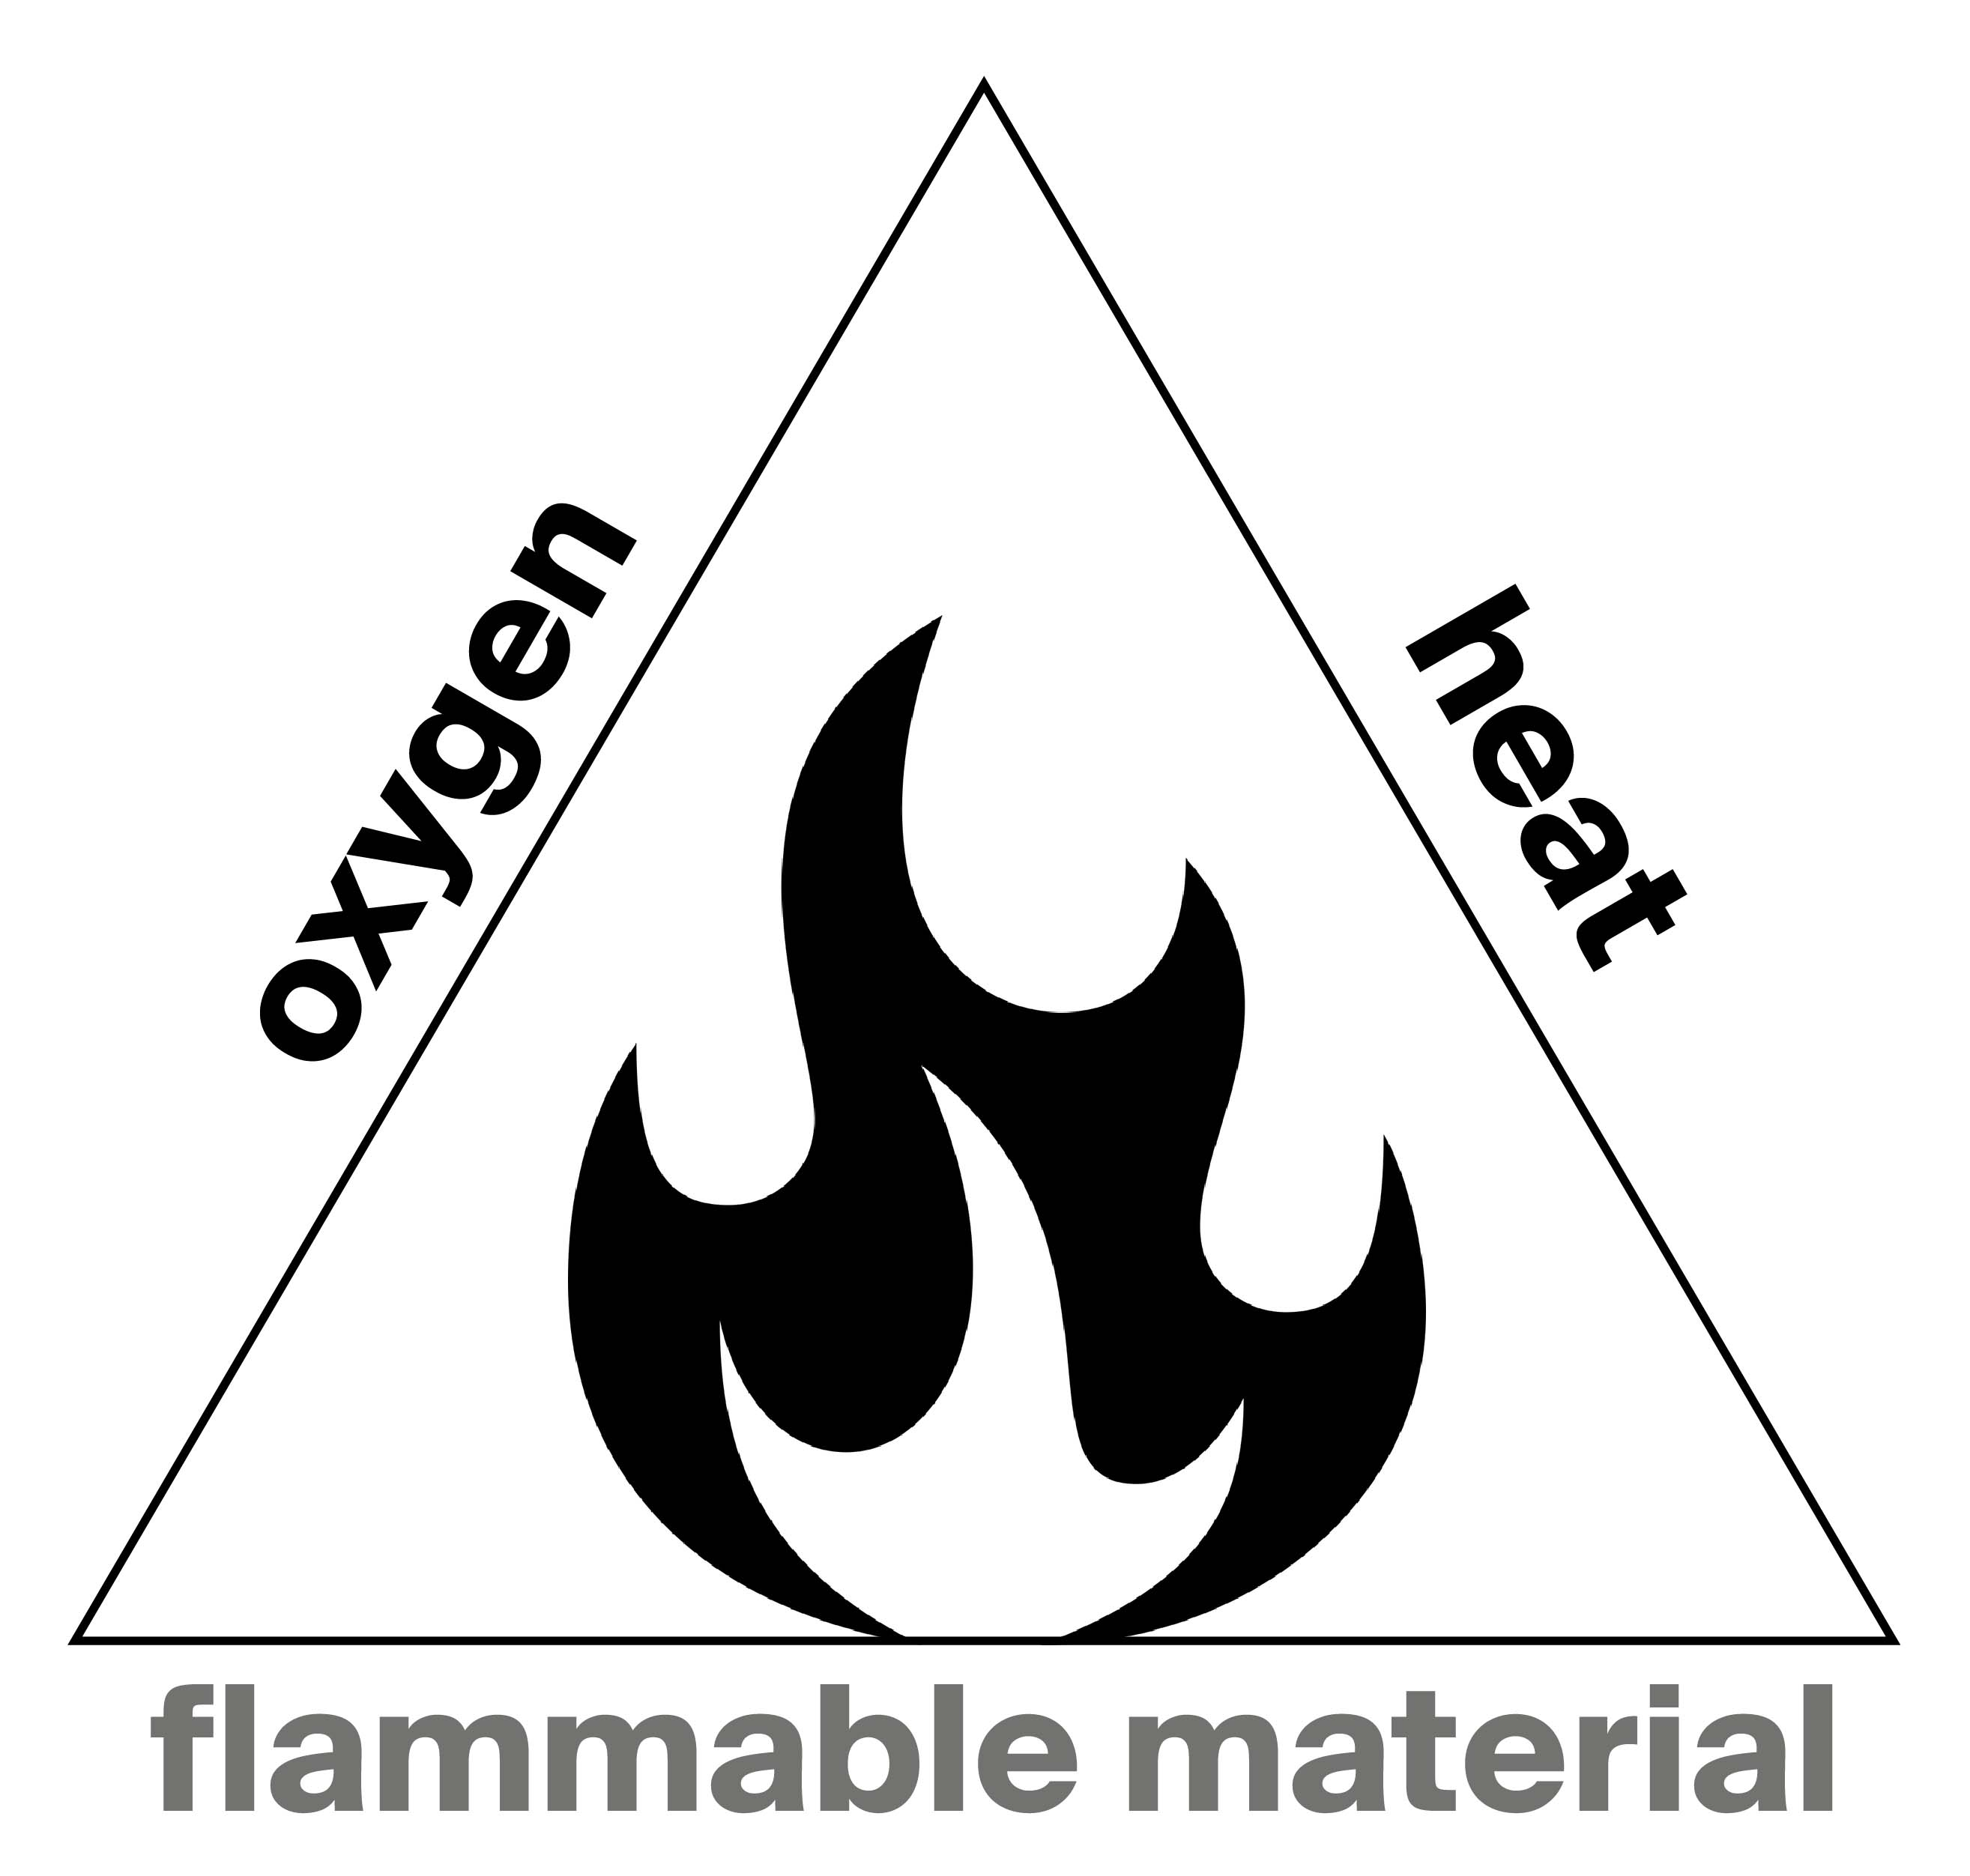 Fire triangle oxygen heat flammable material